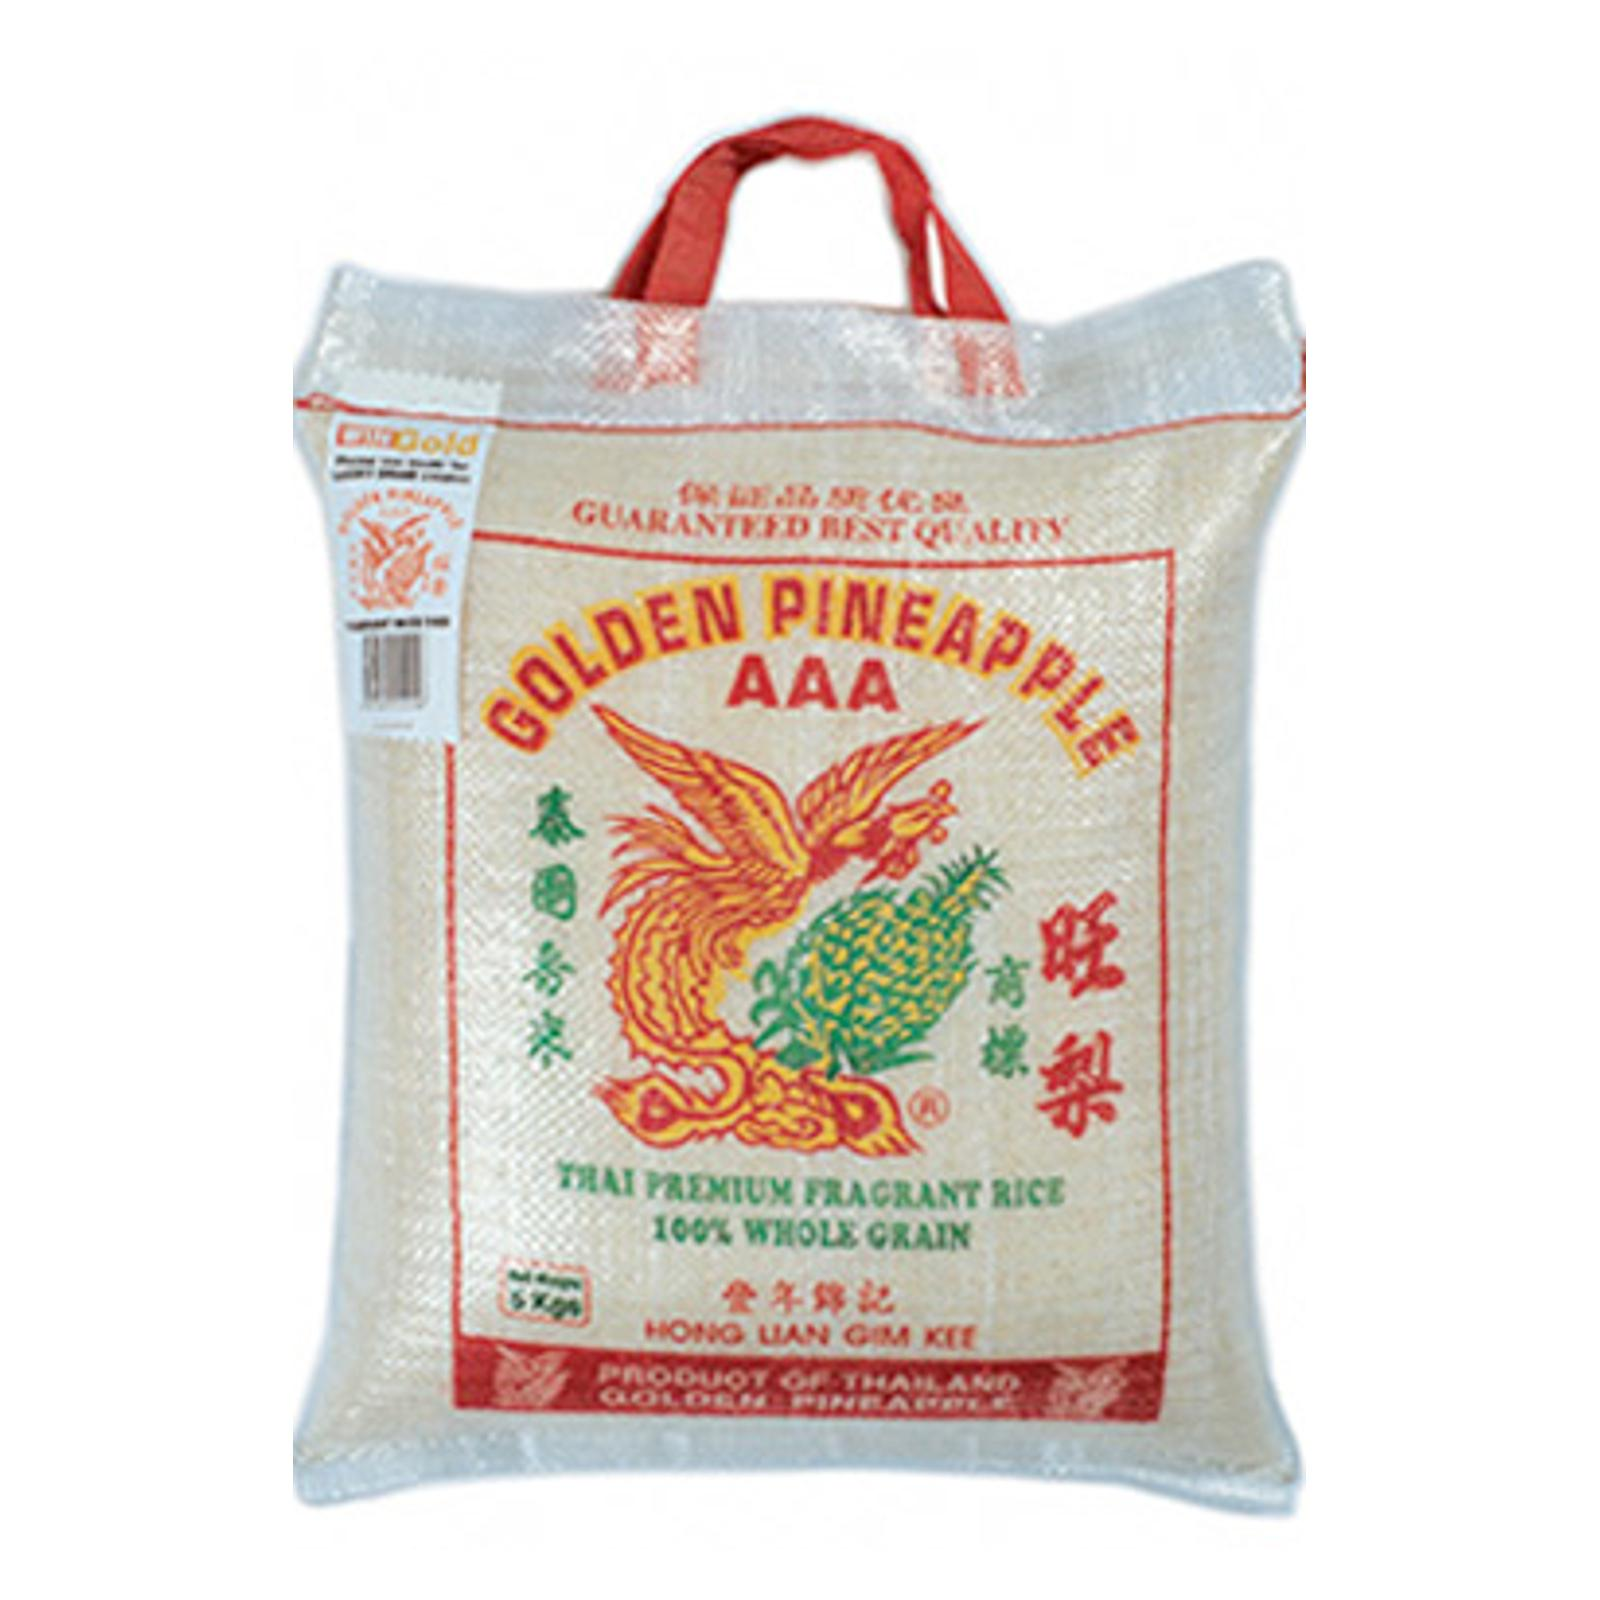 Golden Pineapplethai Fragrant Rice - 5kg (charges Includes Shipping Fee) By Best Buy Mini Mart.